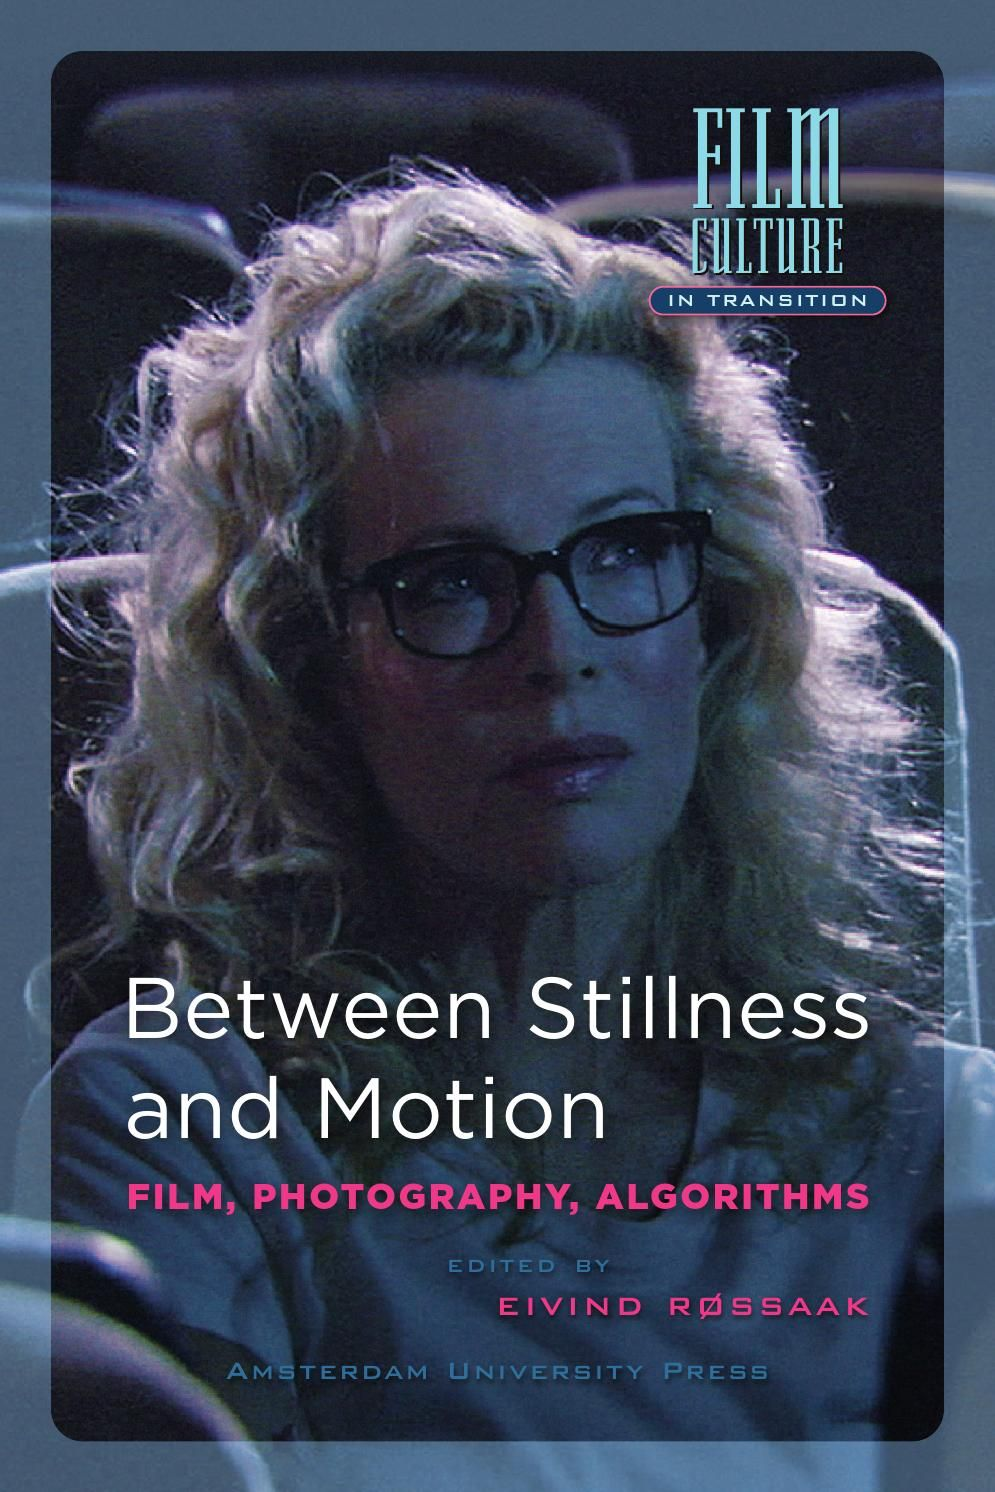 Between stillness and motion film, photography, algorithms Between Stillness and Motion : Film, Photography, Algorithms Author(s) Røssaak, Eivind Publisher Amsterdam University Press, Amsterdam Published 2011 Keywords Motion pictures Language English Number of pages 244 ISBN 9789089642127